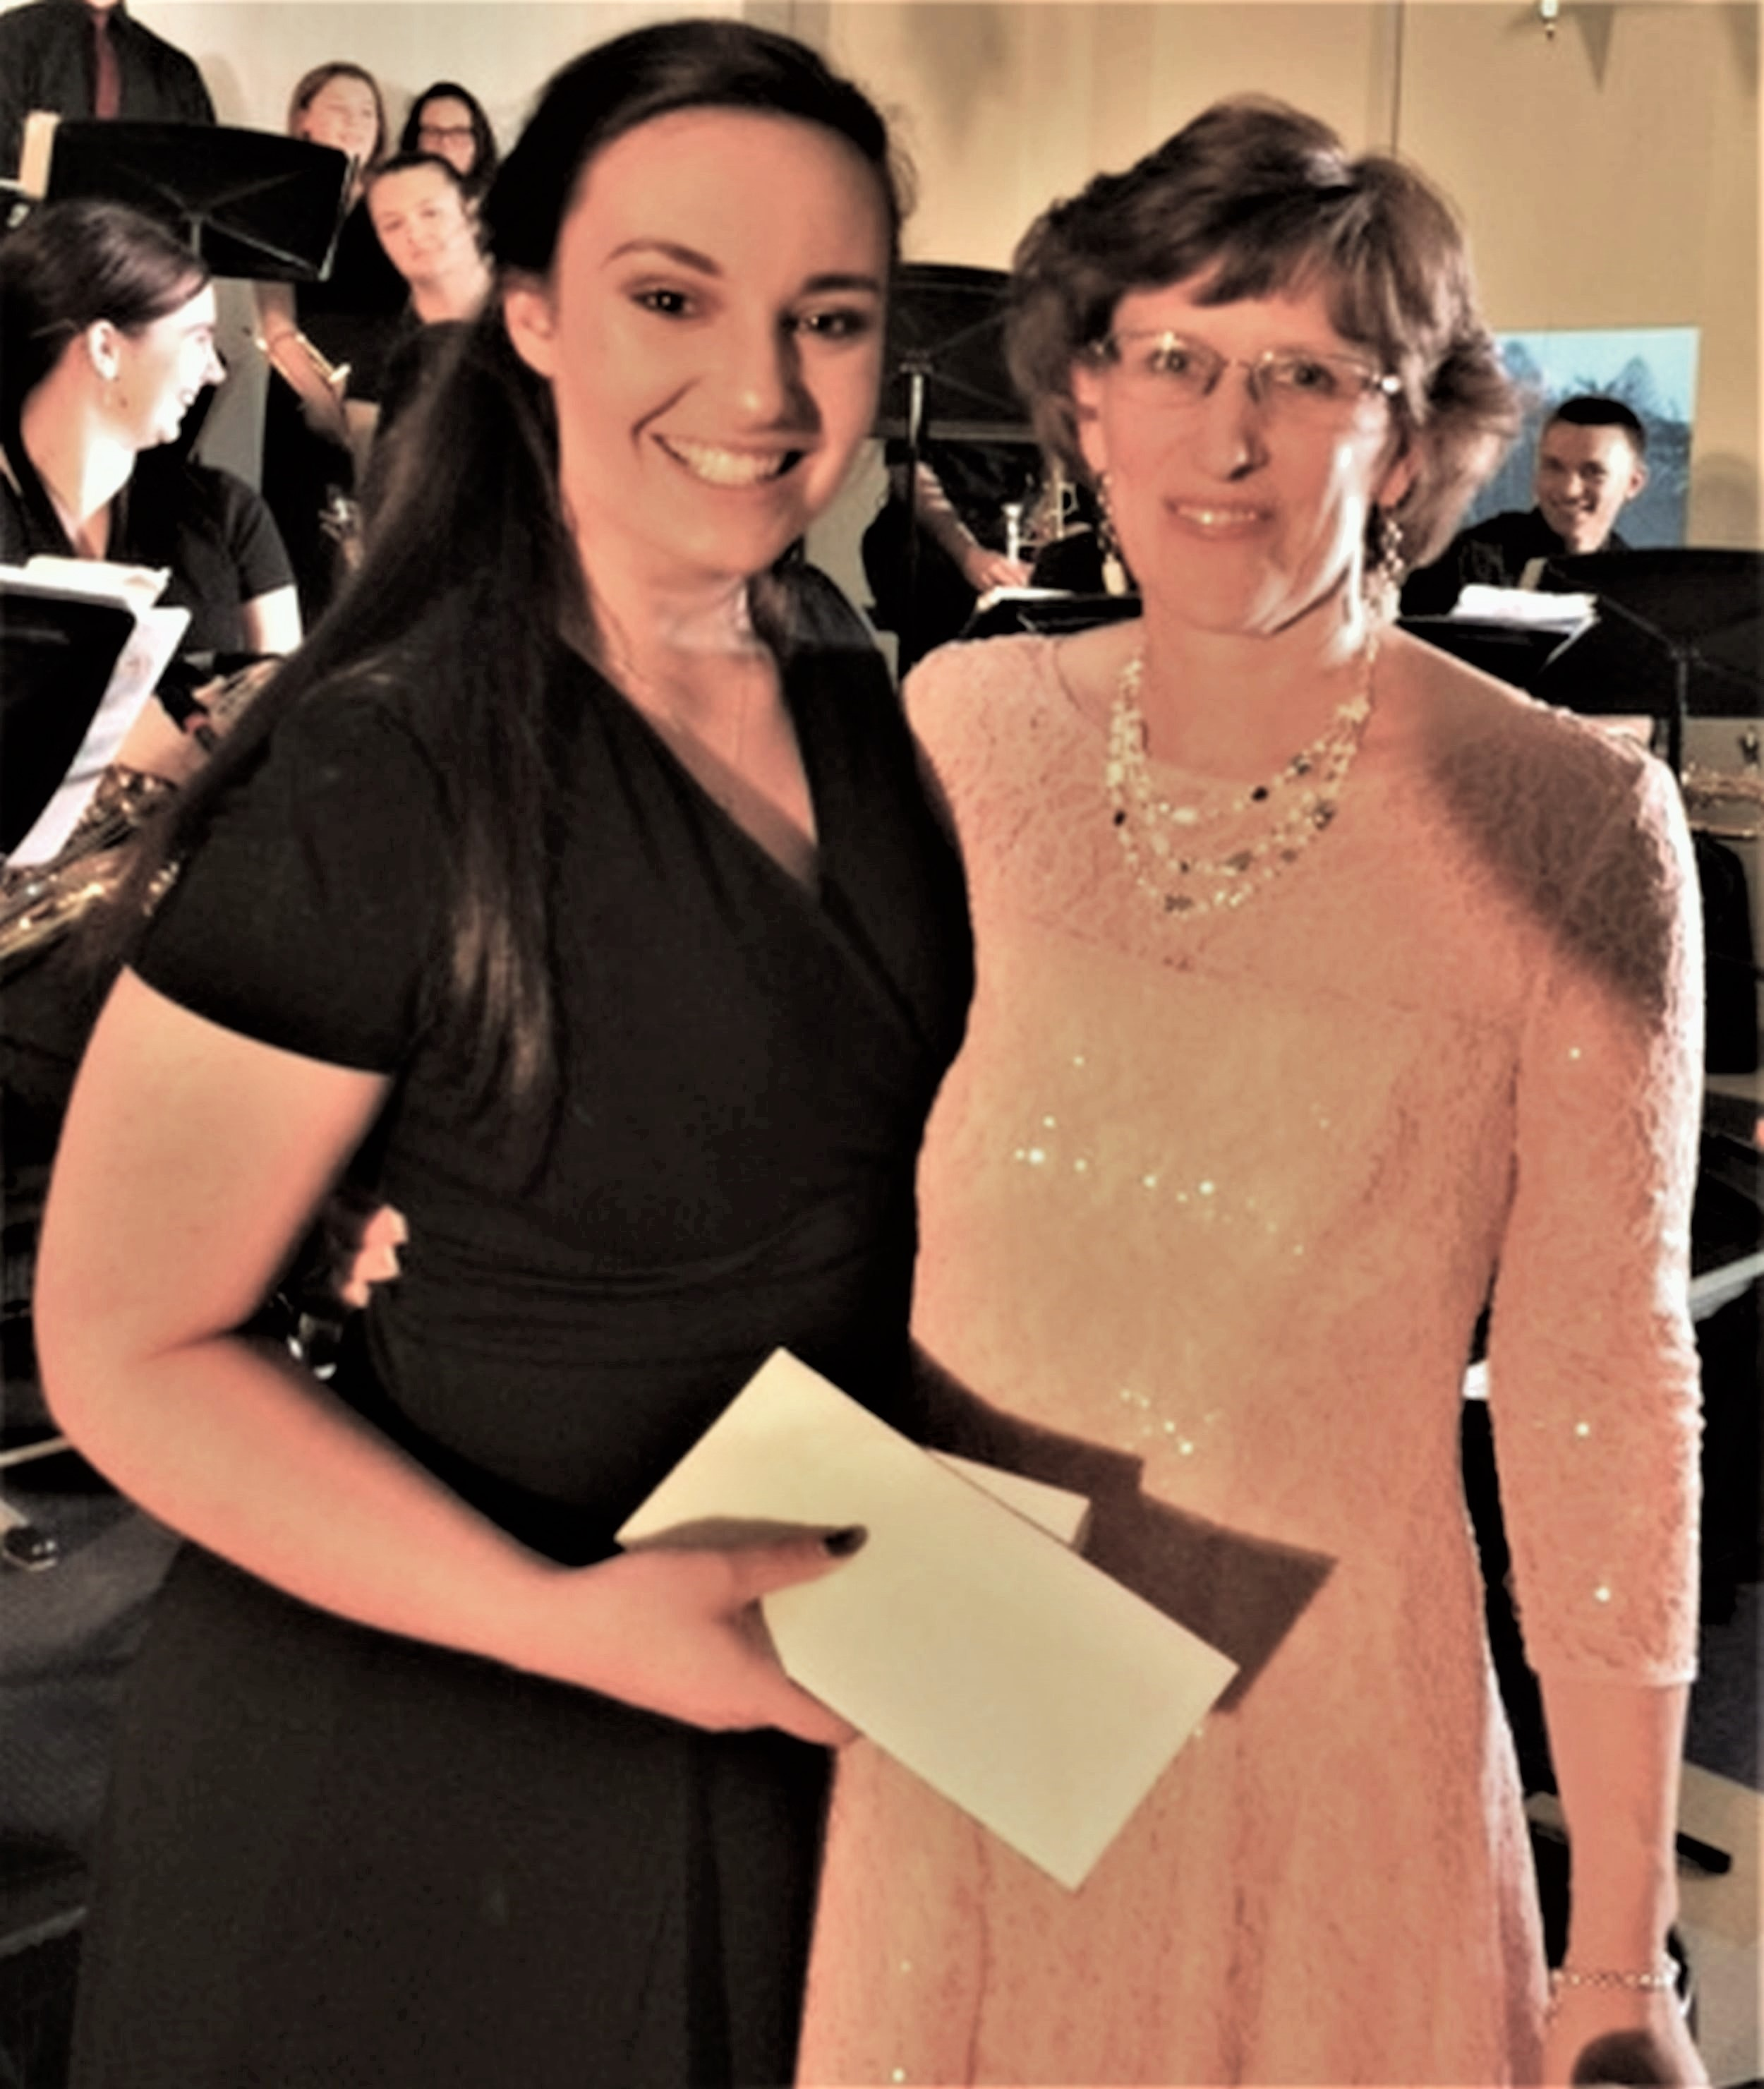 Katie Spagnolo, left, a graduating senior at Thornton Academy, is this year's recipient of the Marcel 'Mike' Drapeau Alumni Band Scholarship and she is taught by Jennifer Witherell-Stebbins, Fine Arts Department Co-Chair at Thornton Academy. SUBMITTED PHOTO